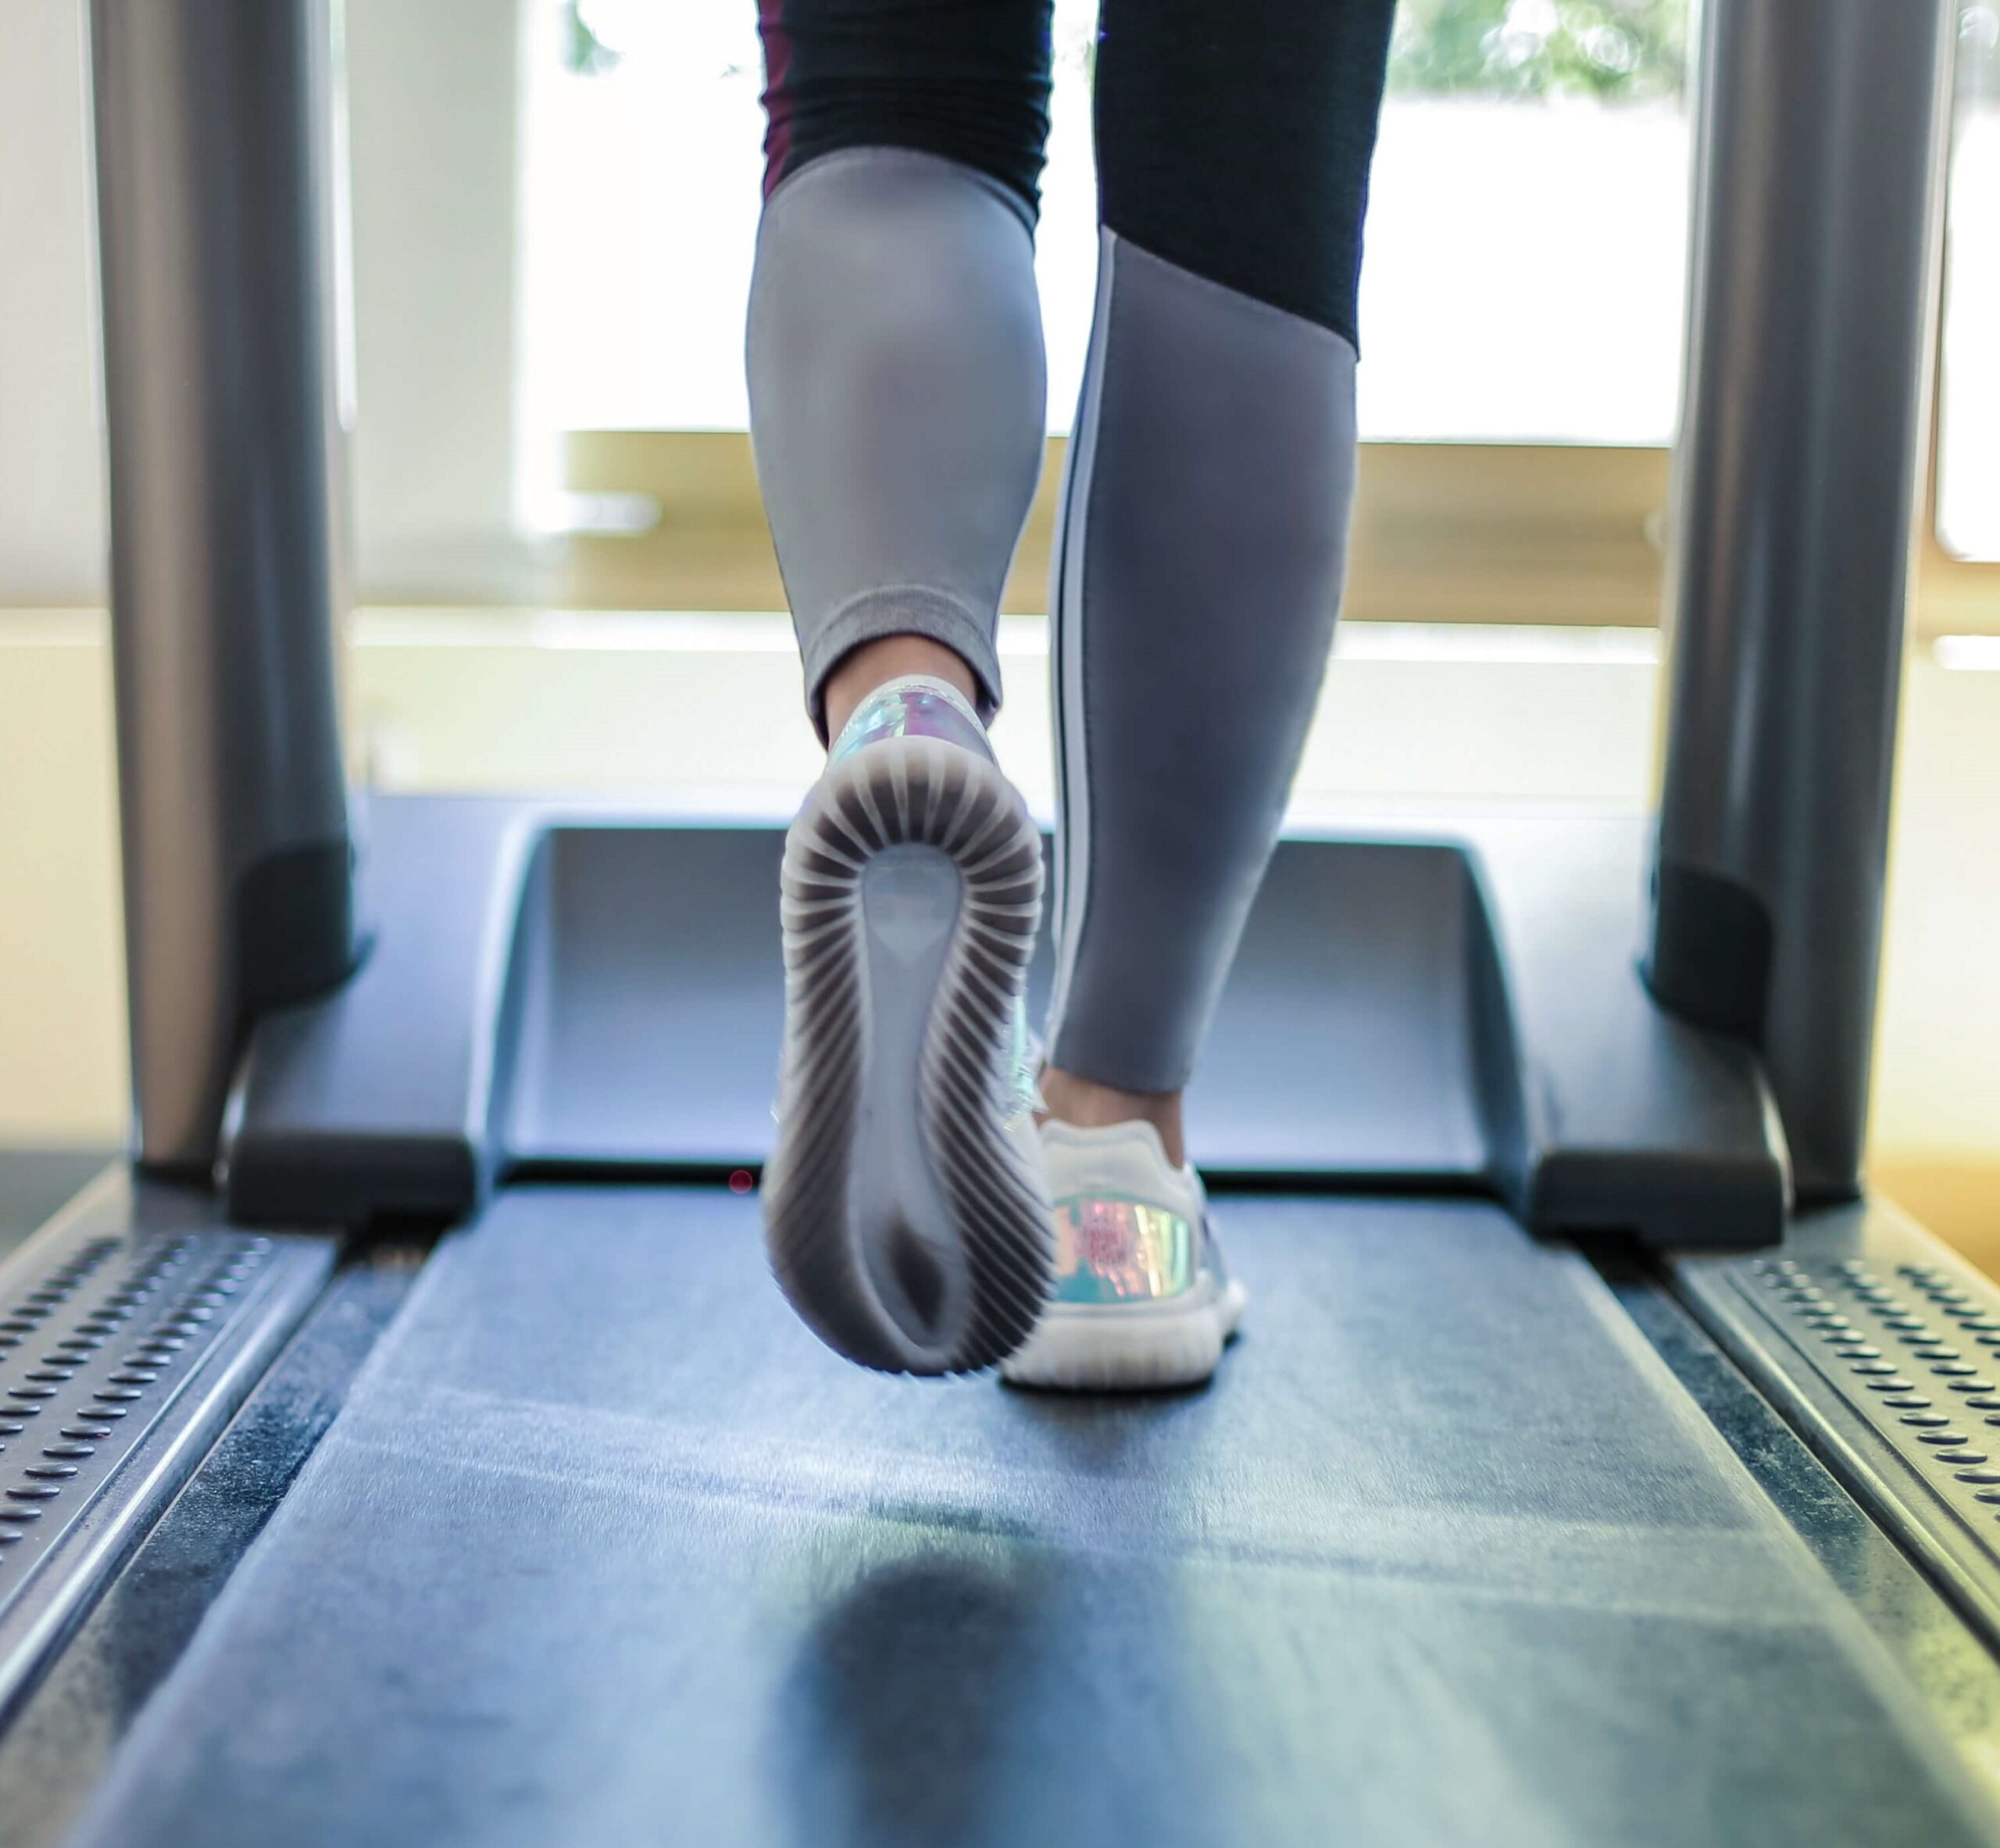 What to Watch on the Treadmill